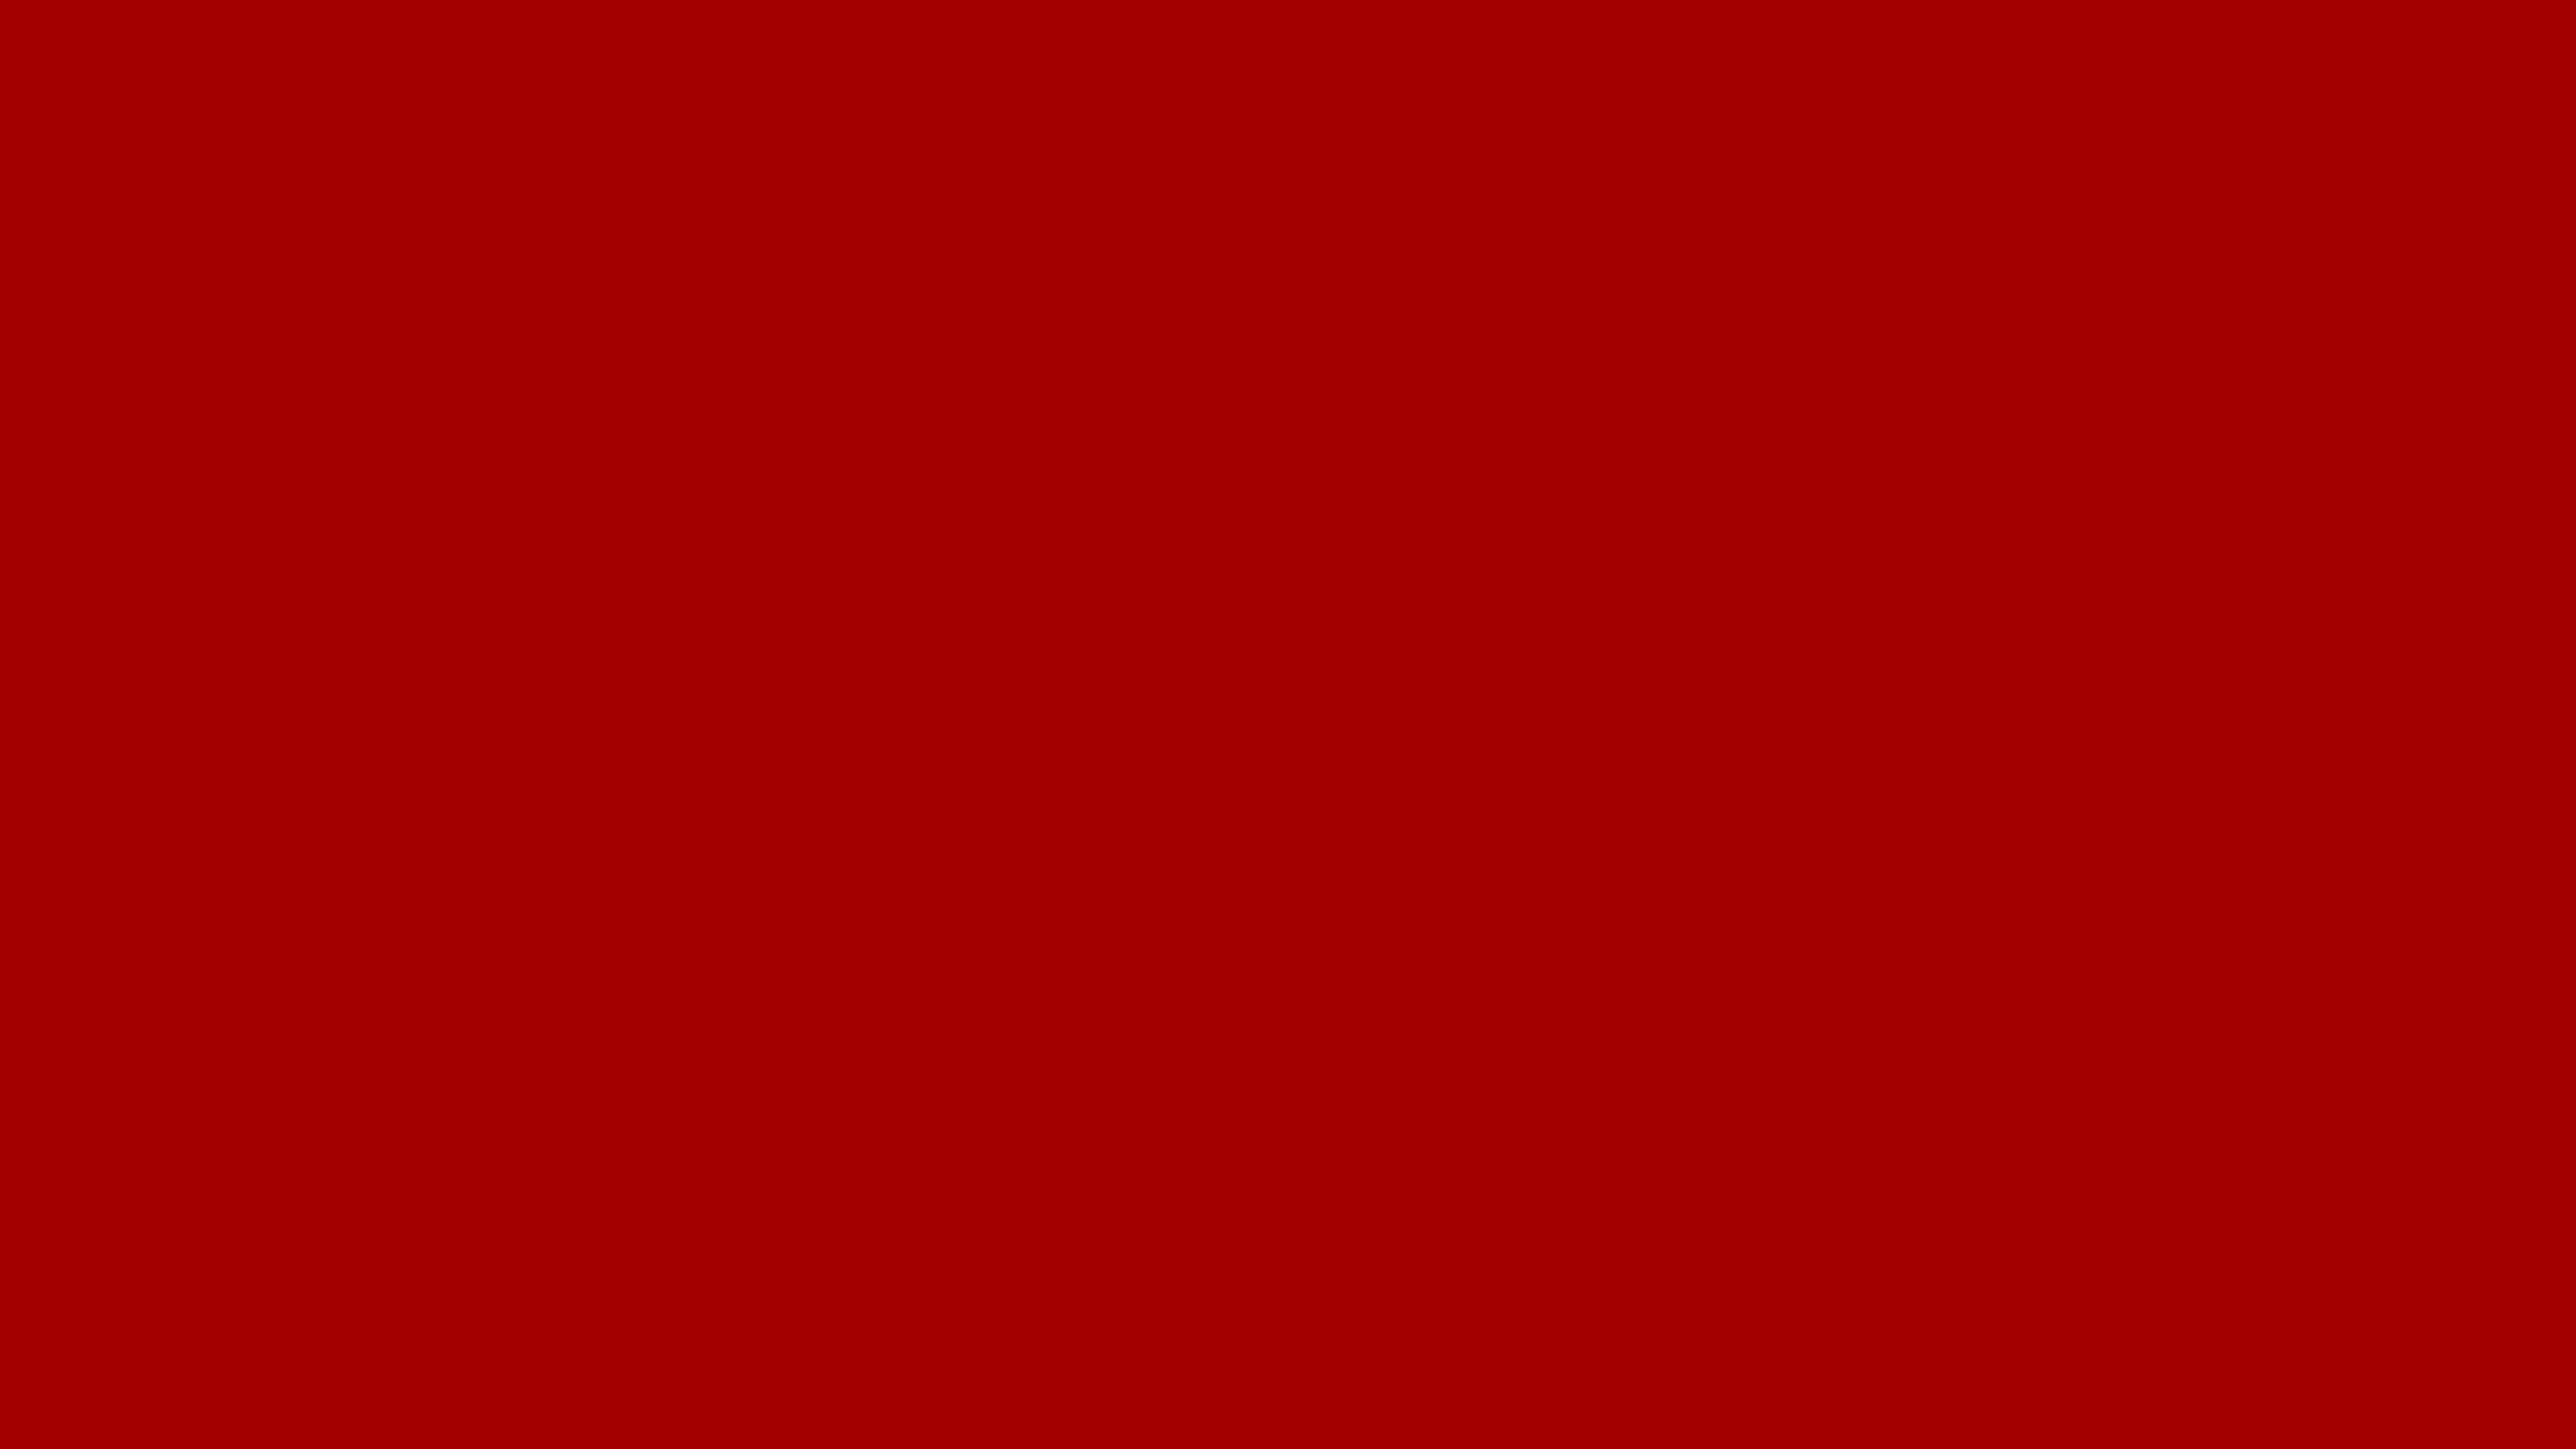 3840x2160 Dark Candy Apple Red Solid Color Background